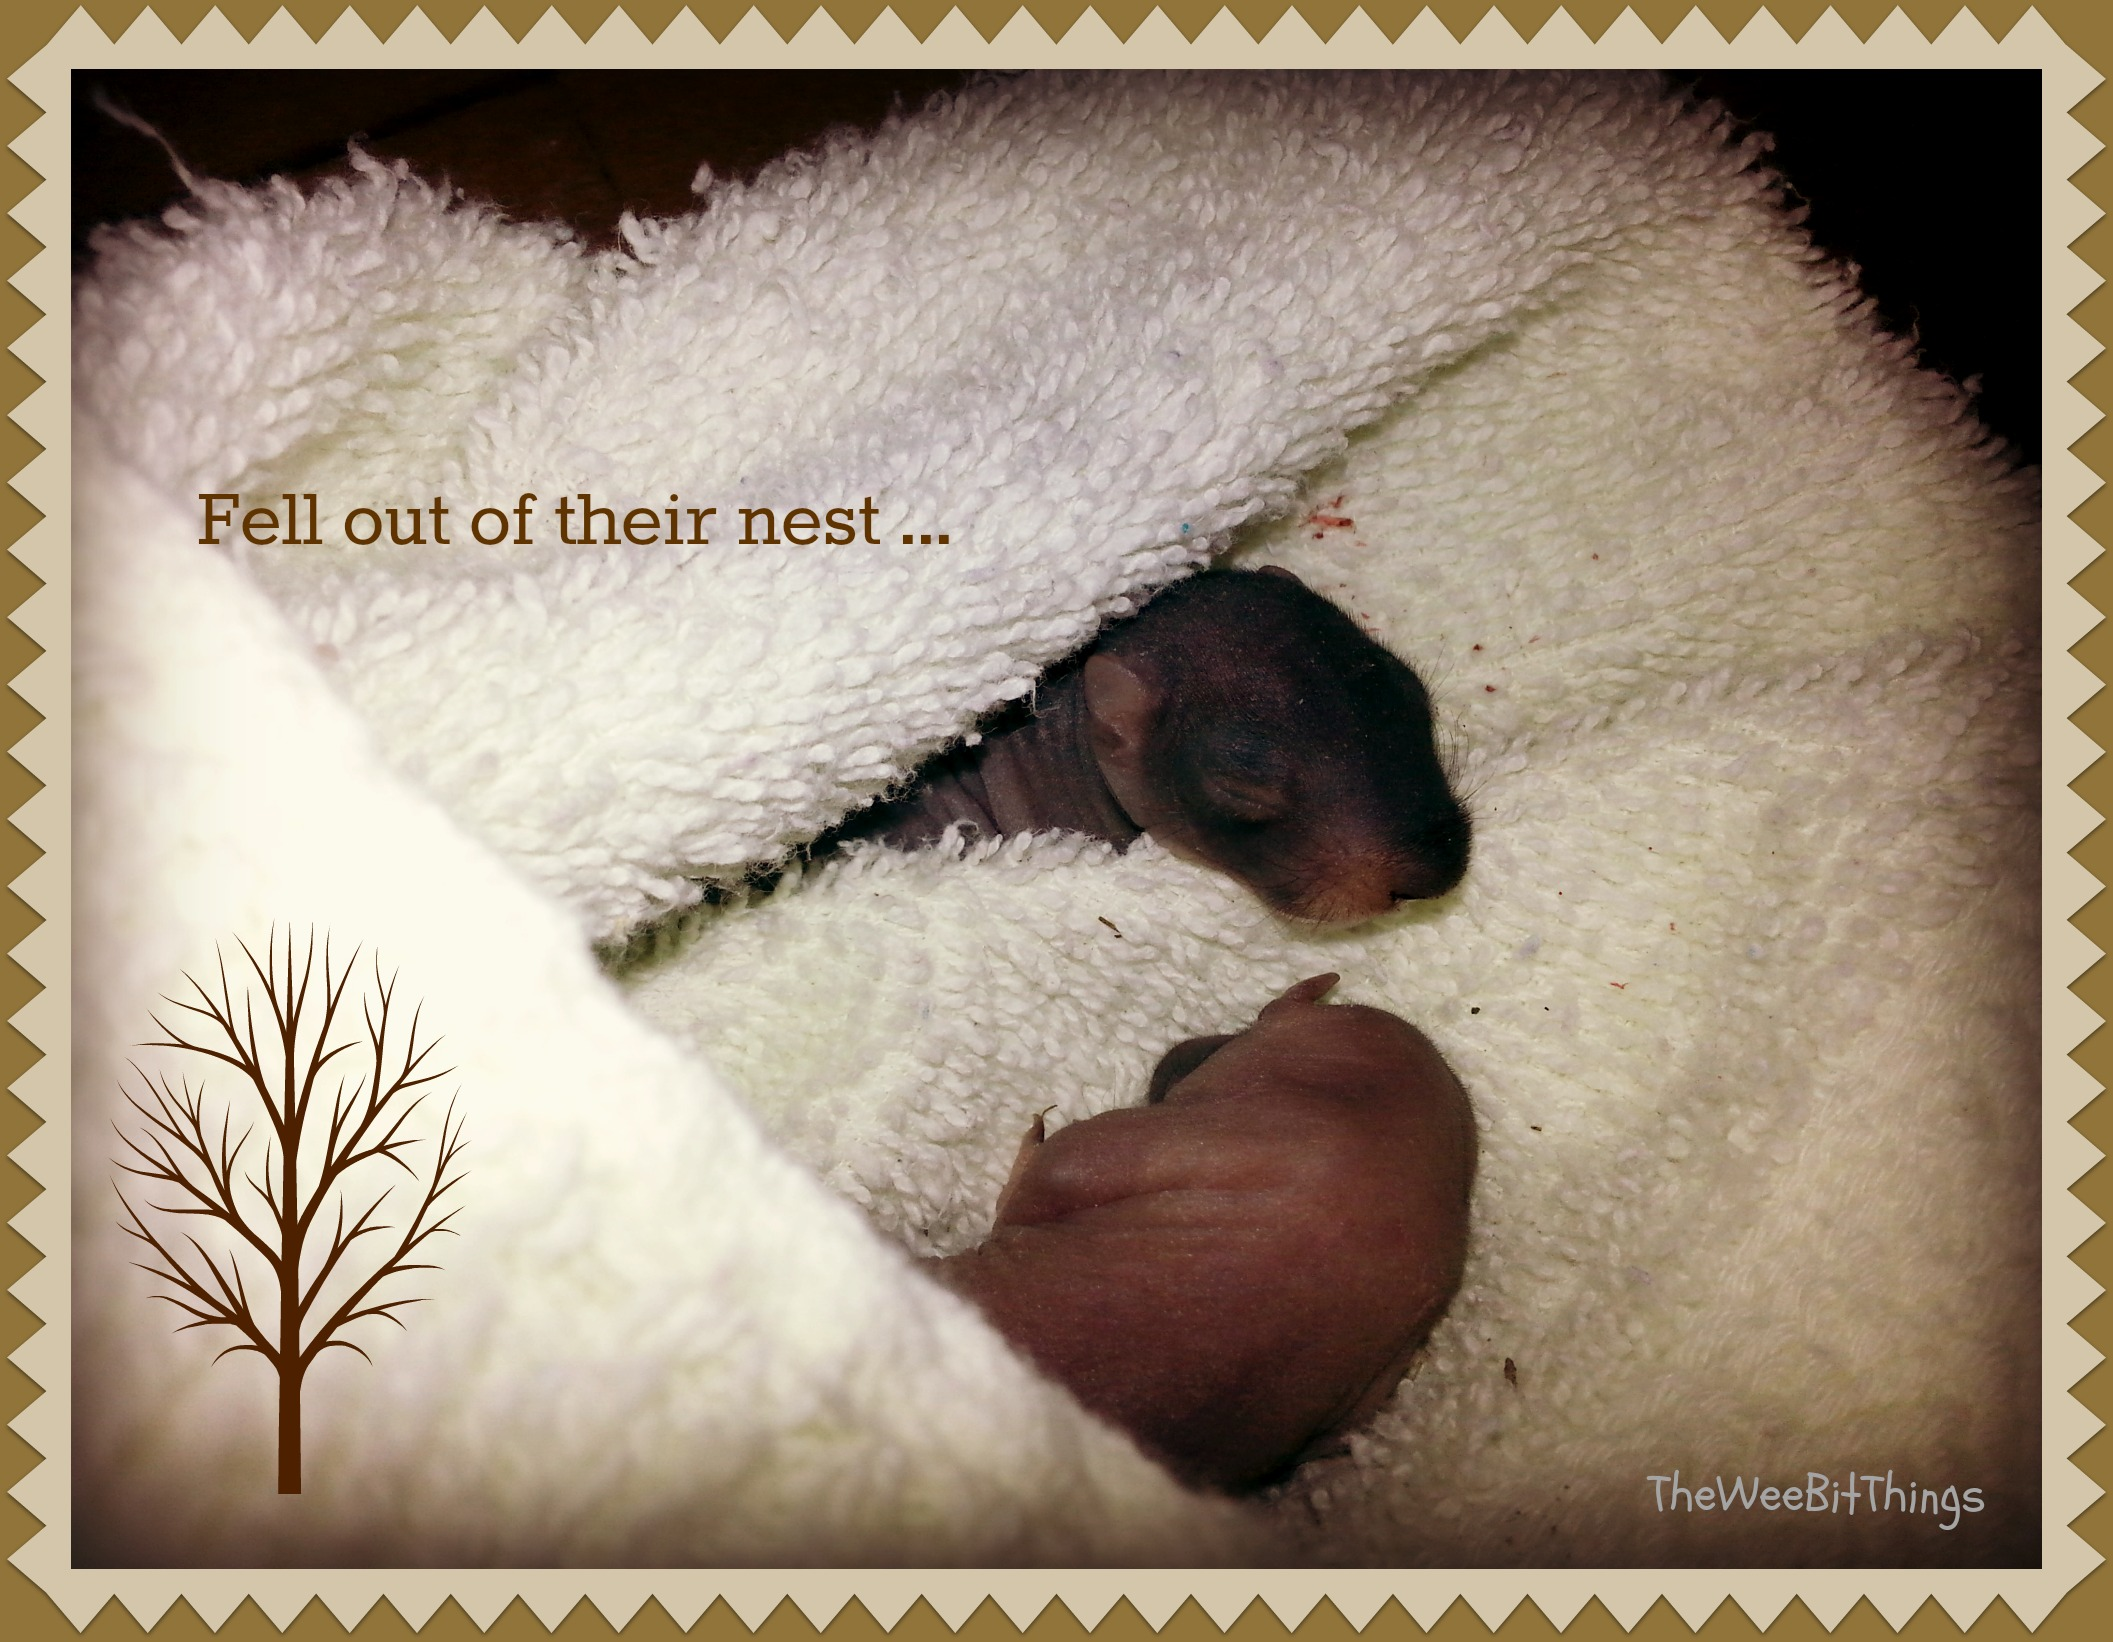 black baby squirrels wrapped in a blanket